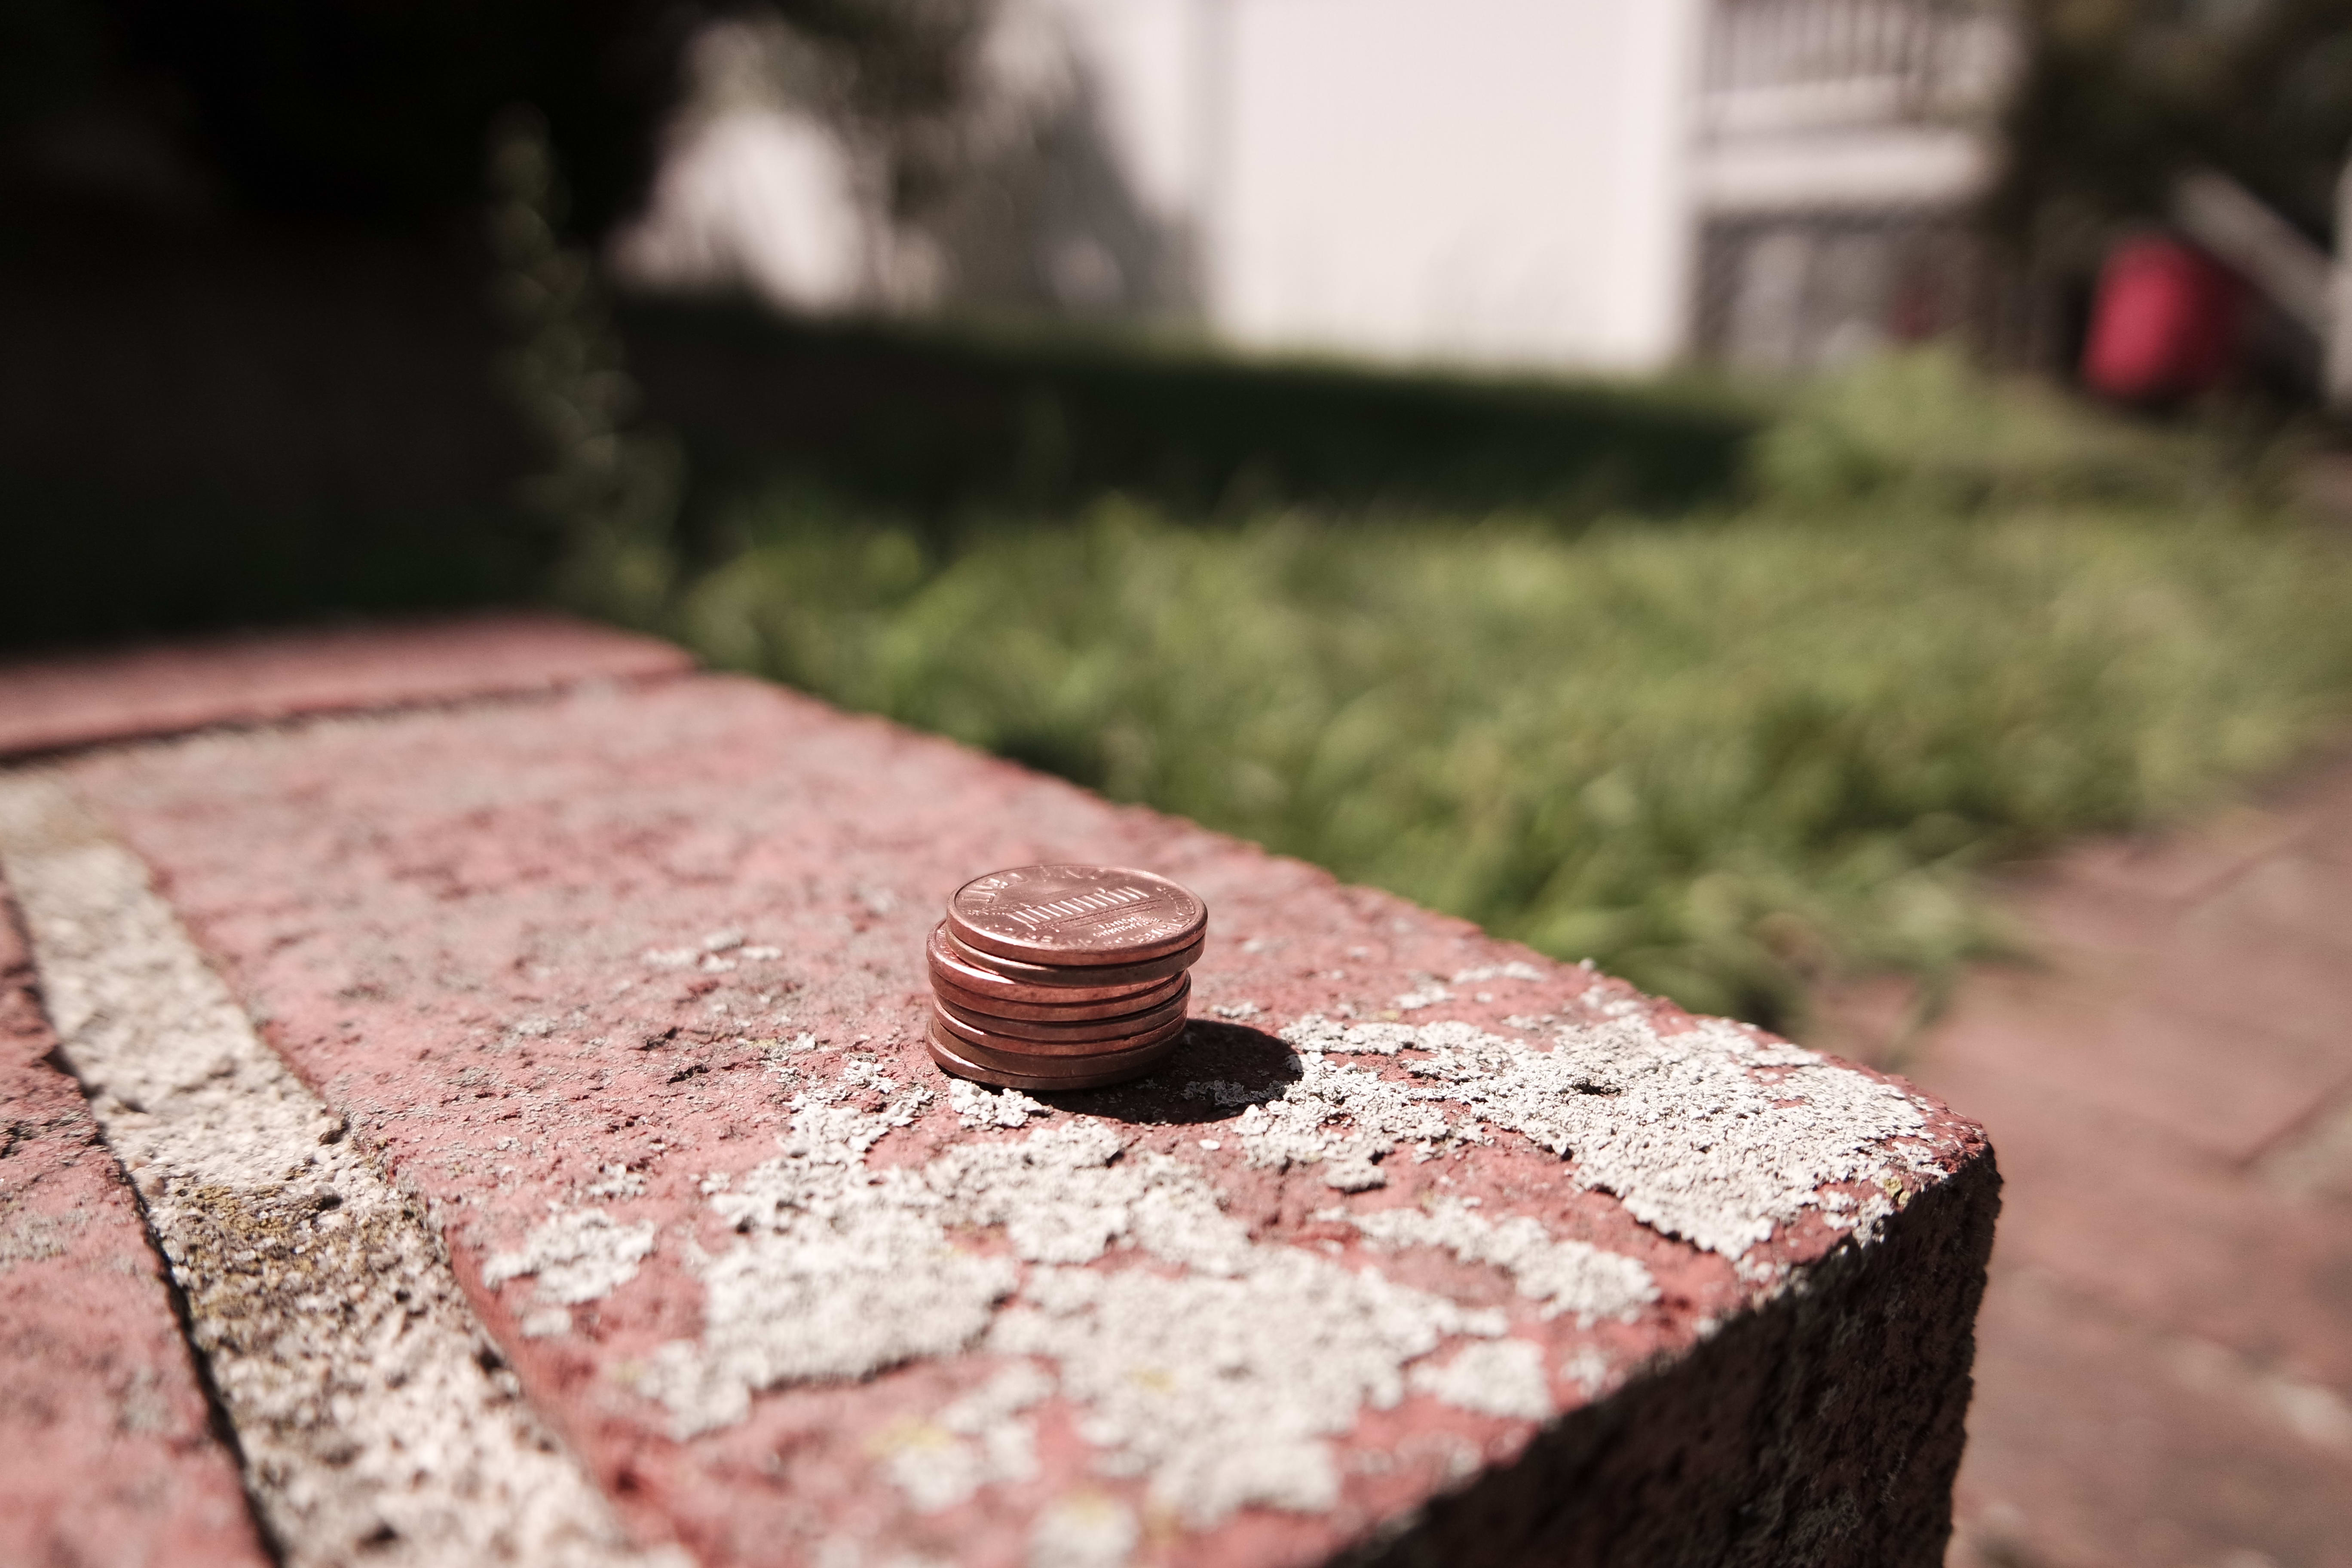 A sample photo of a stack of pennies shot by the Samsung NX3000.